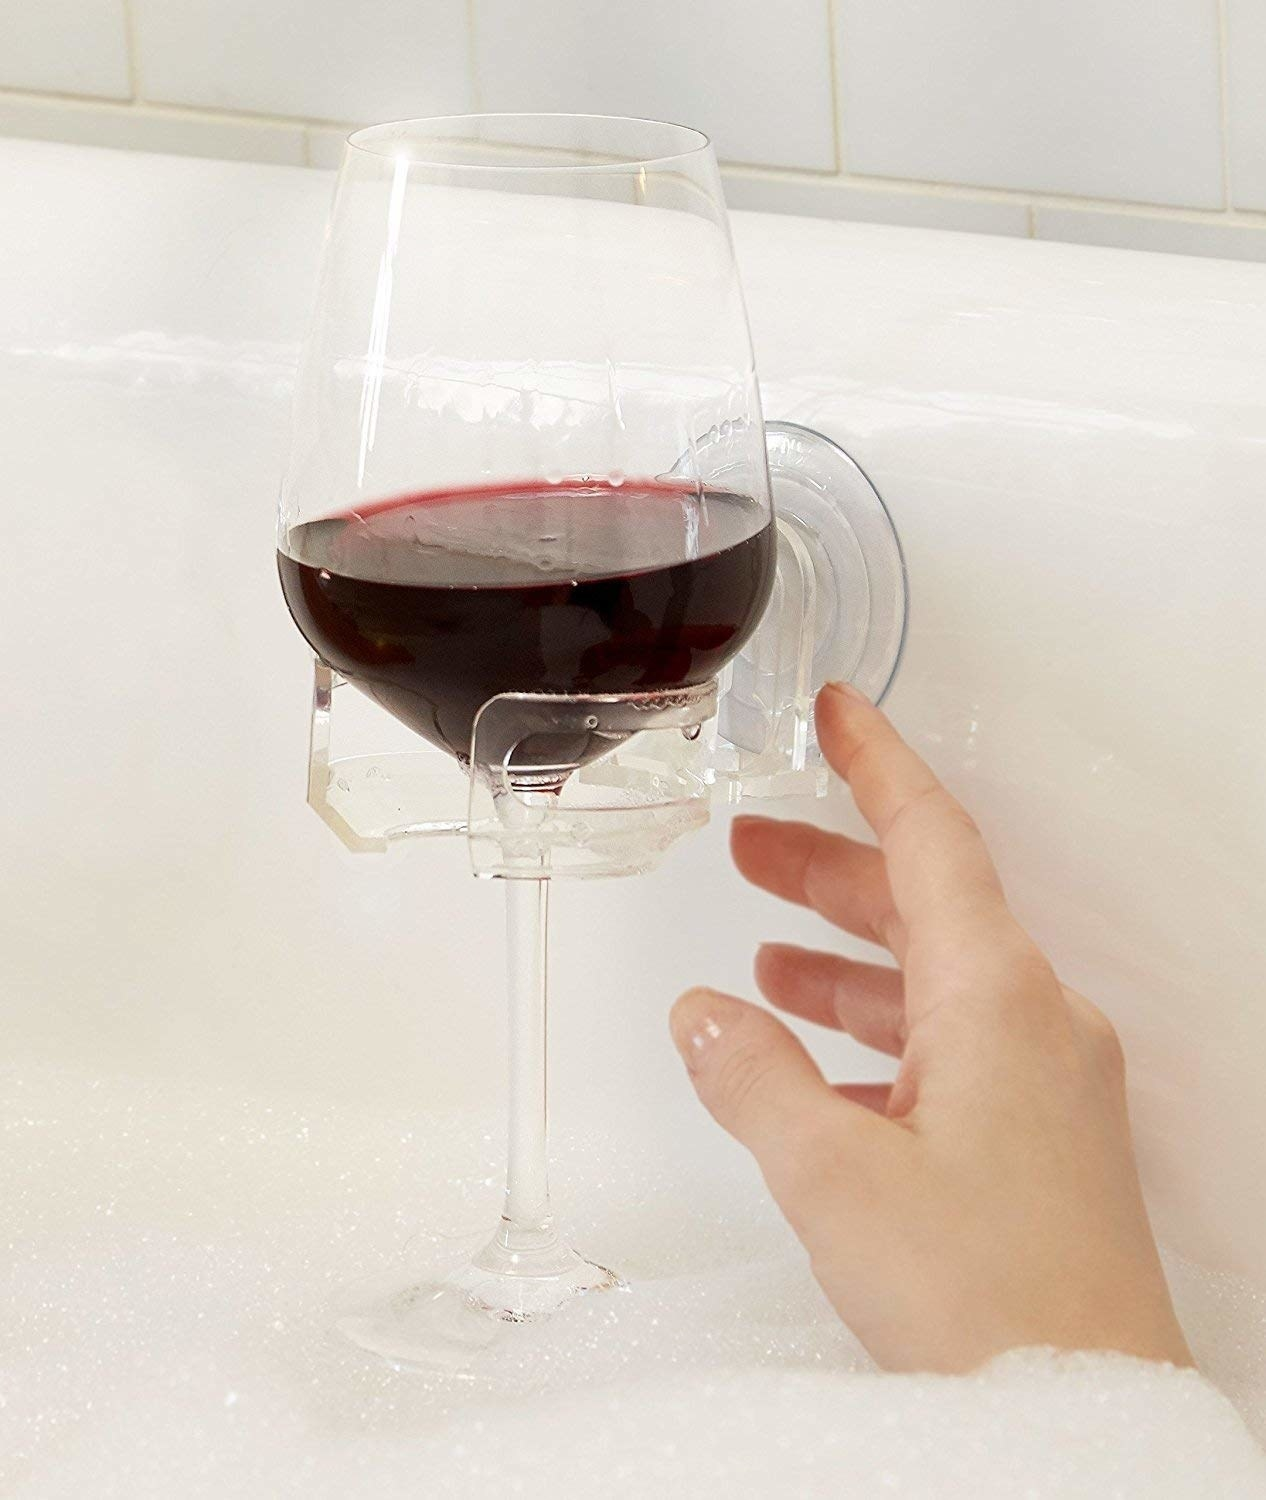 hand reaches for glass of wine on shelf with suction cup on side of tub